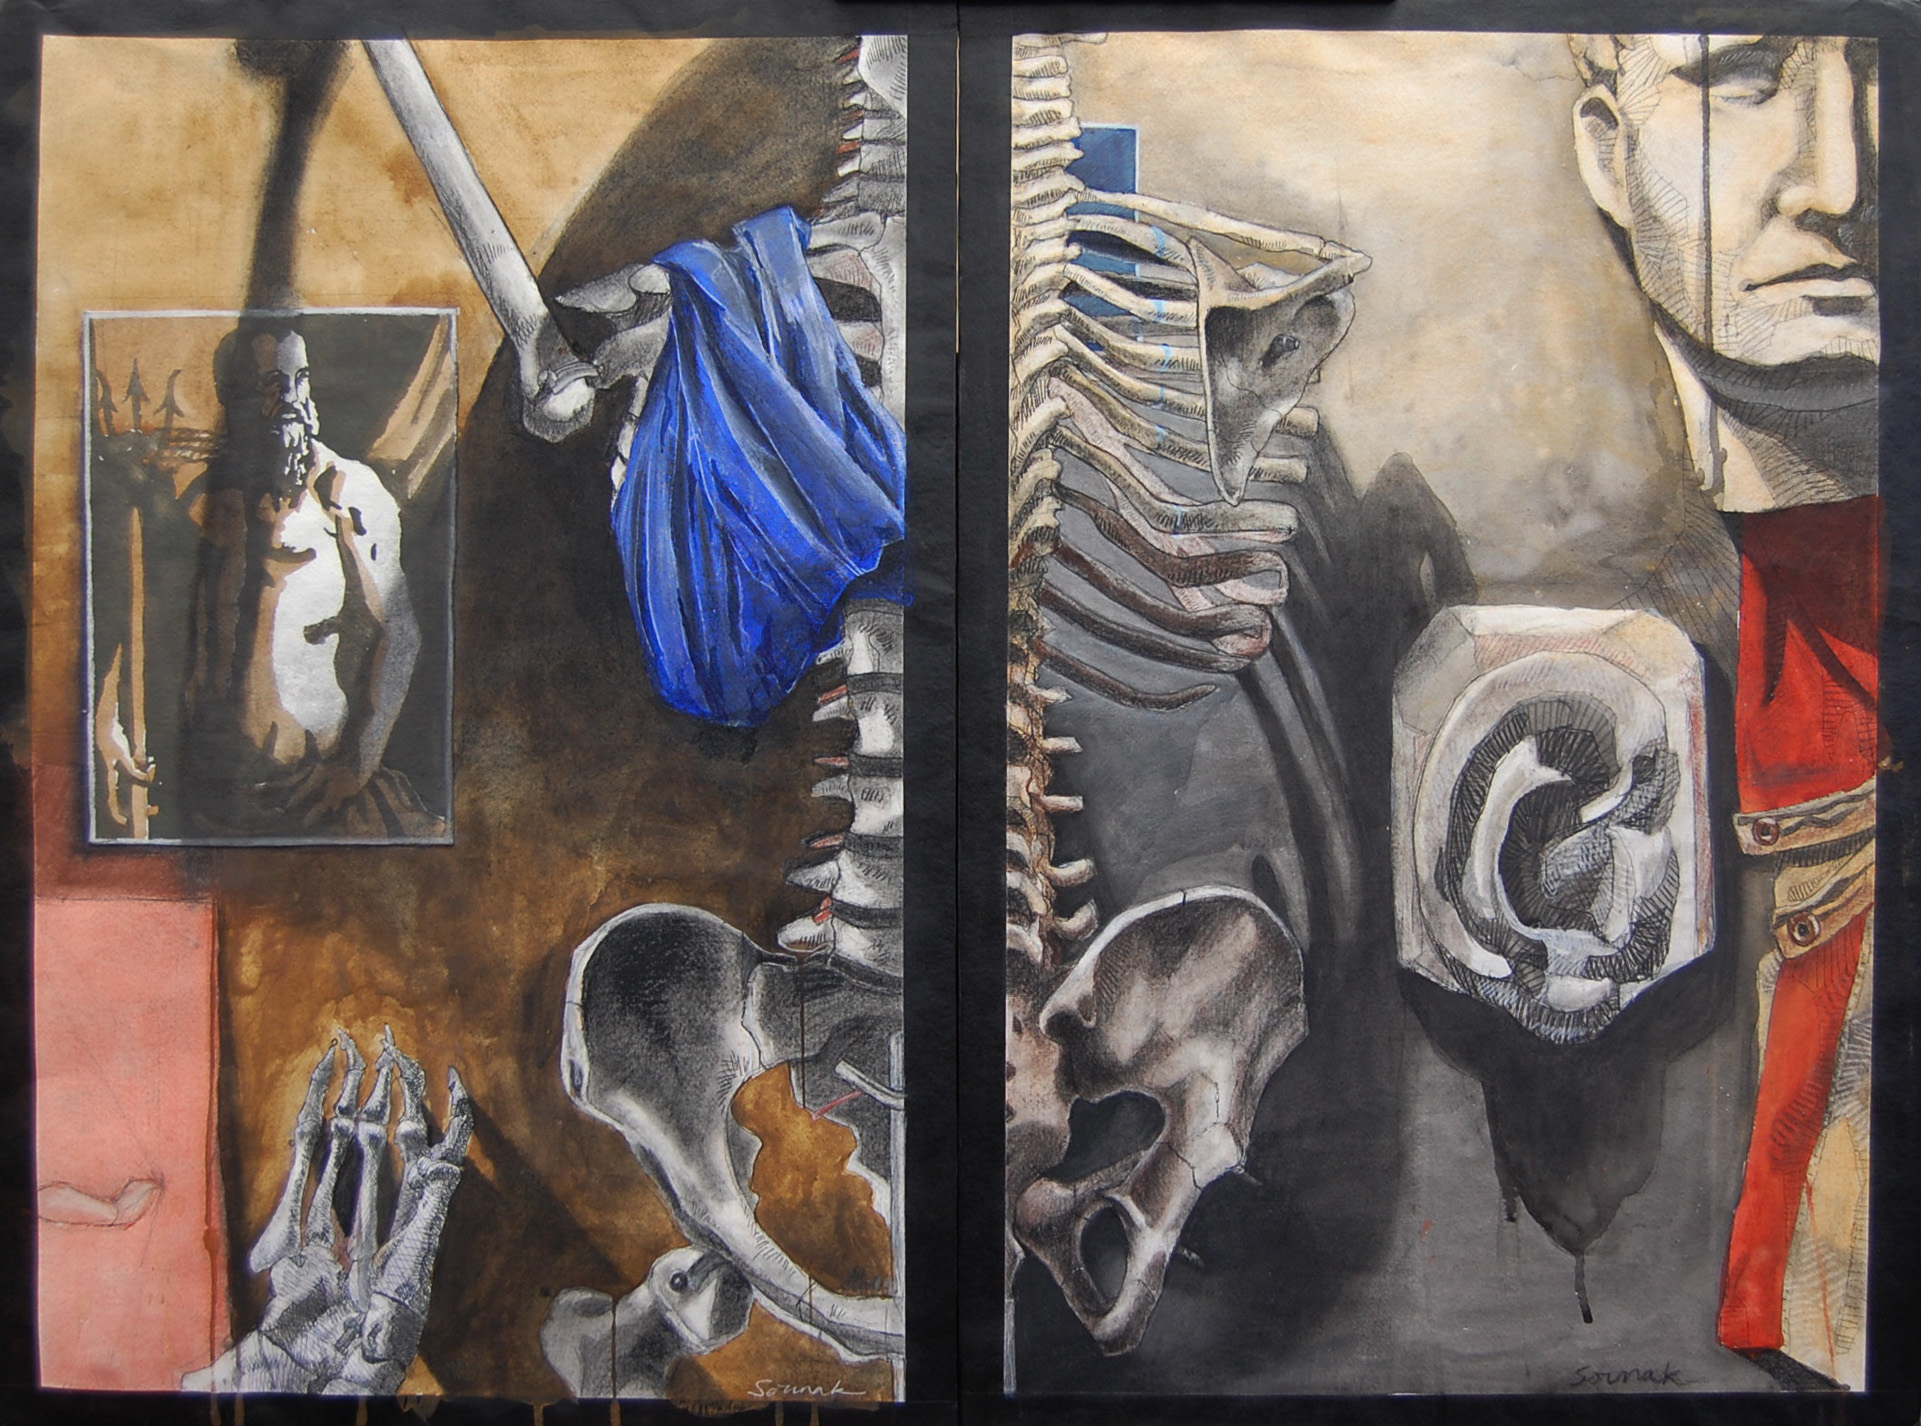 Diptych: Shadows of the Blue (left) and The Sound of No One Listening (right) 22x30 inches using watercolor, charcoal, graphite, pen and collage